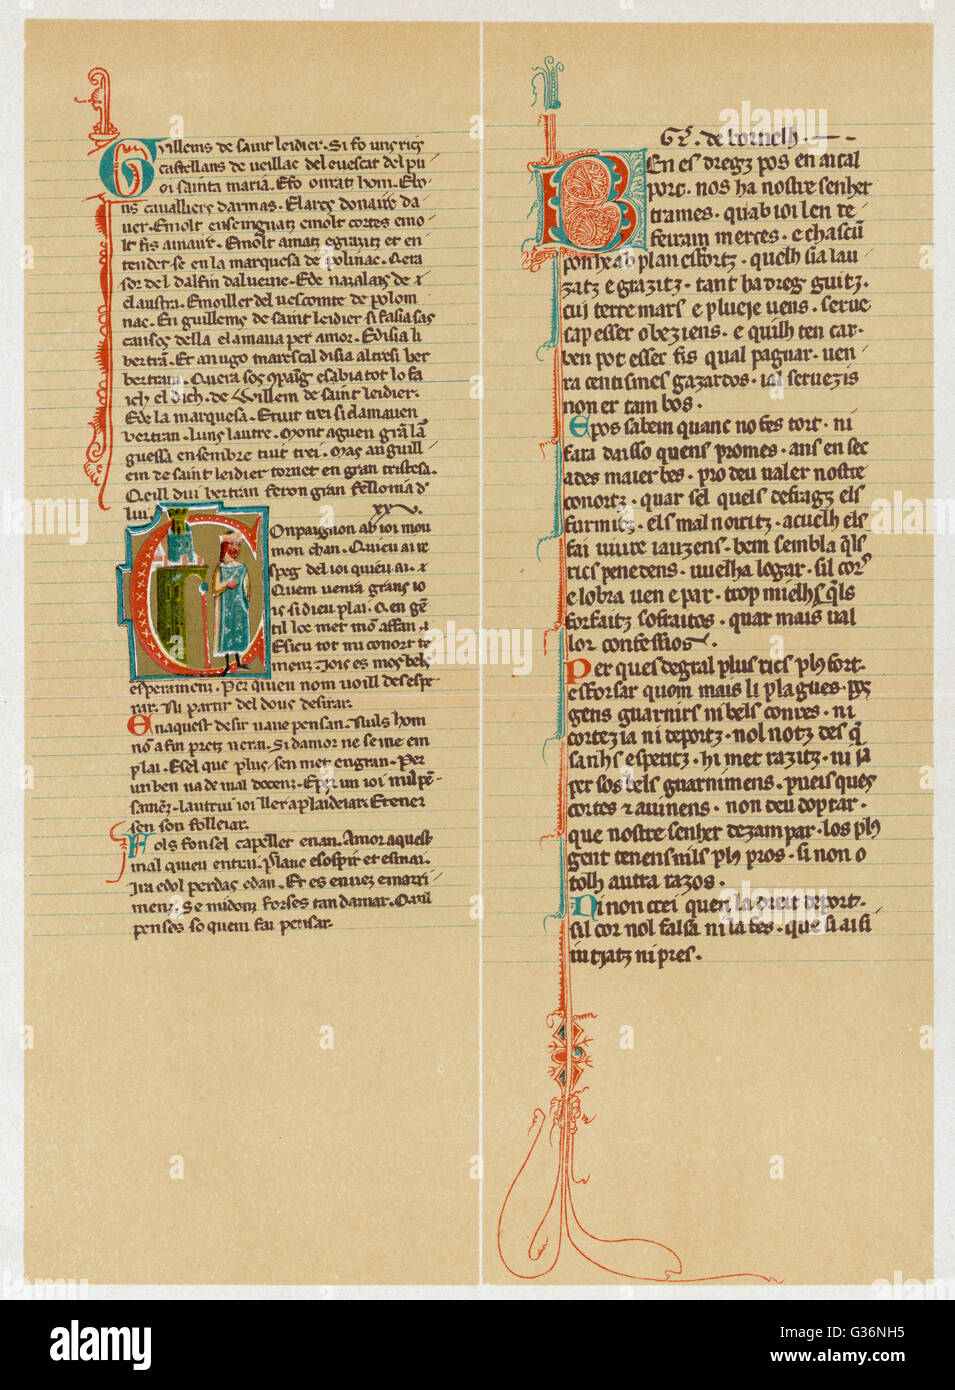 A page from a Troubadour poem, written in Italian and Provencal, with decorated initial letters and decorated margins. Stock Photo